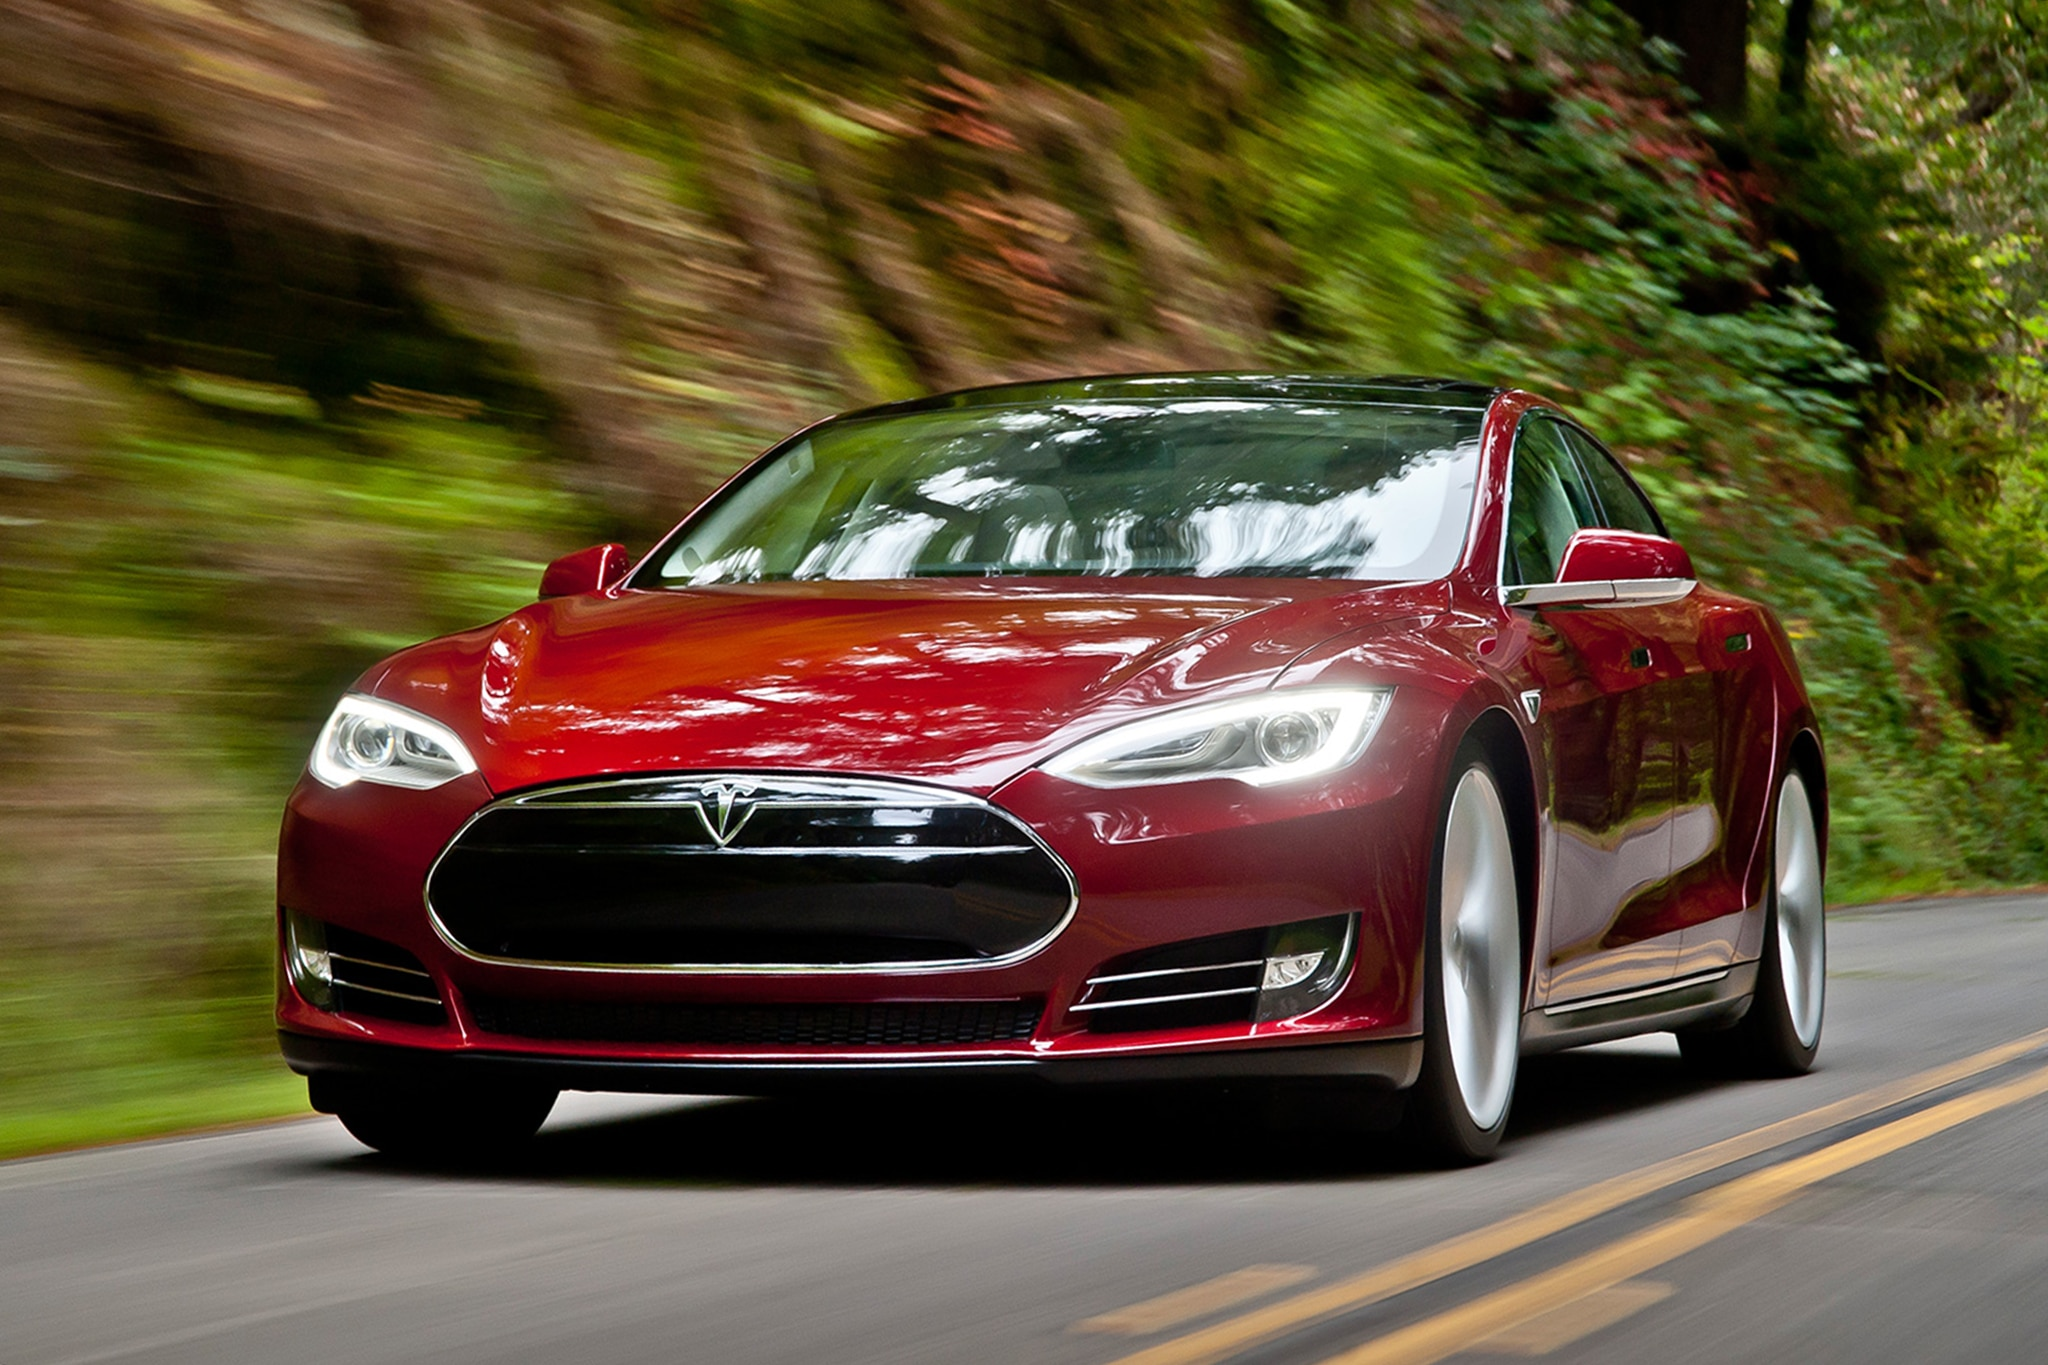 2014 Tesla Model S Front End In Motion1